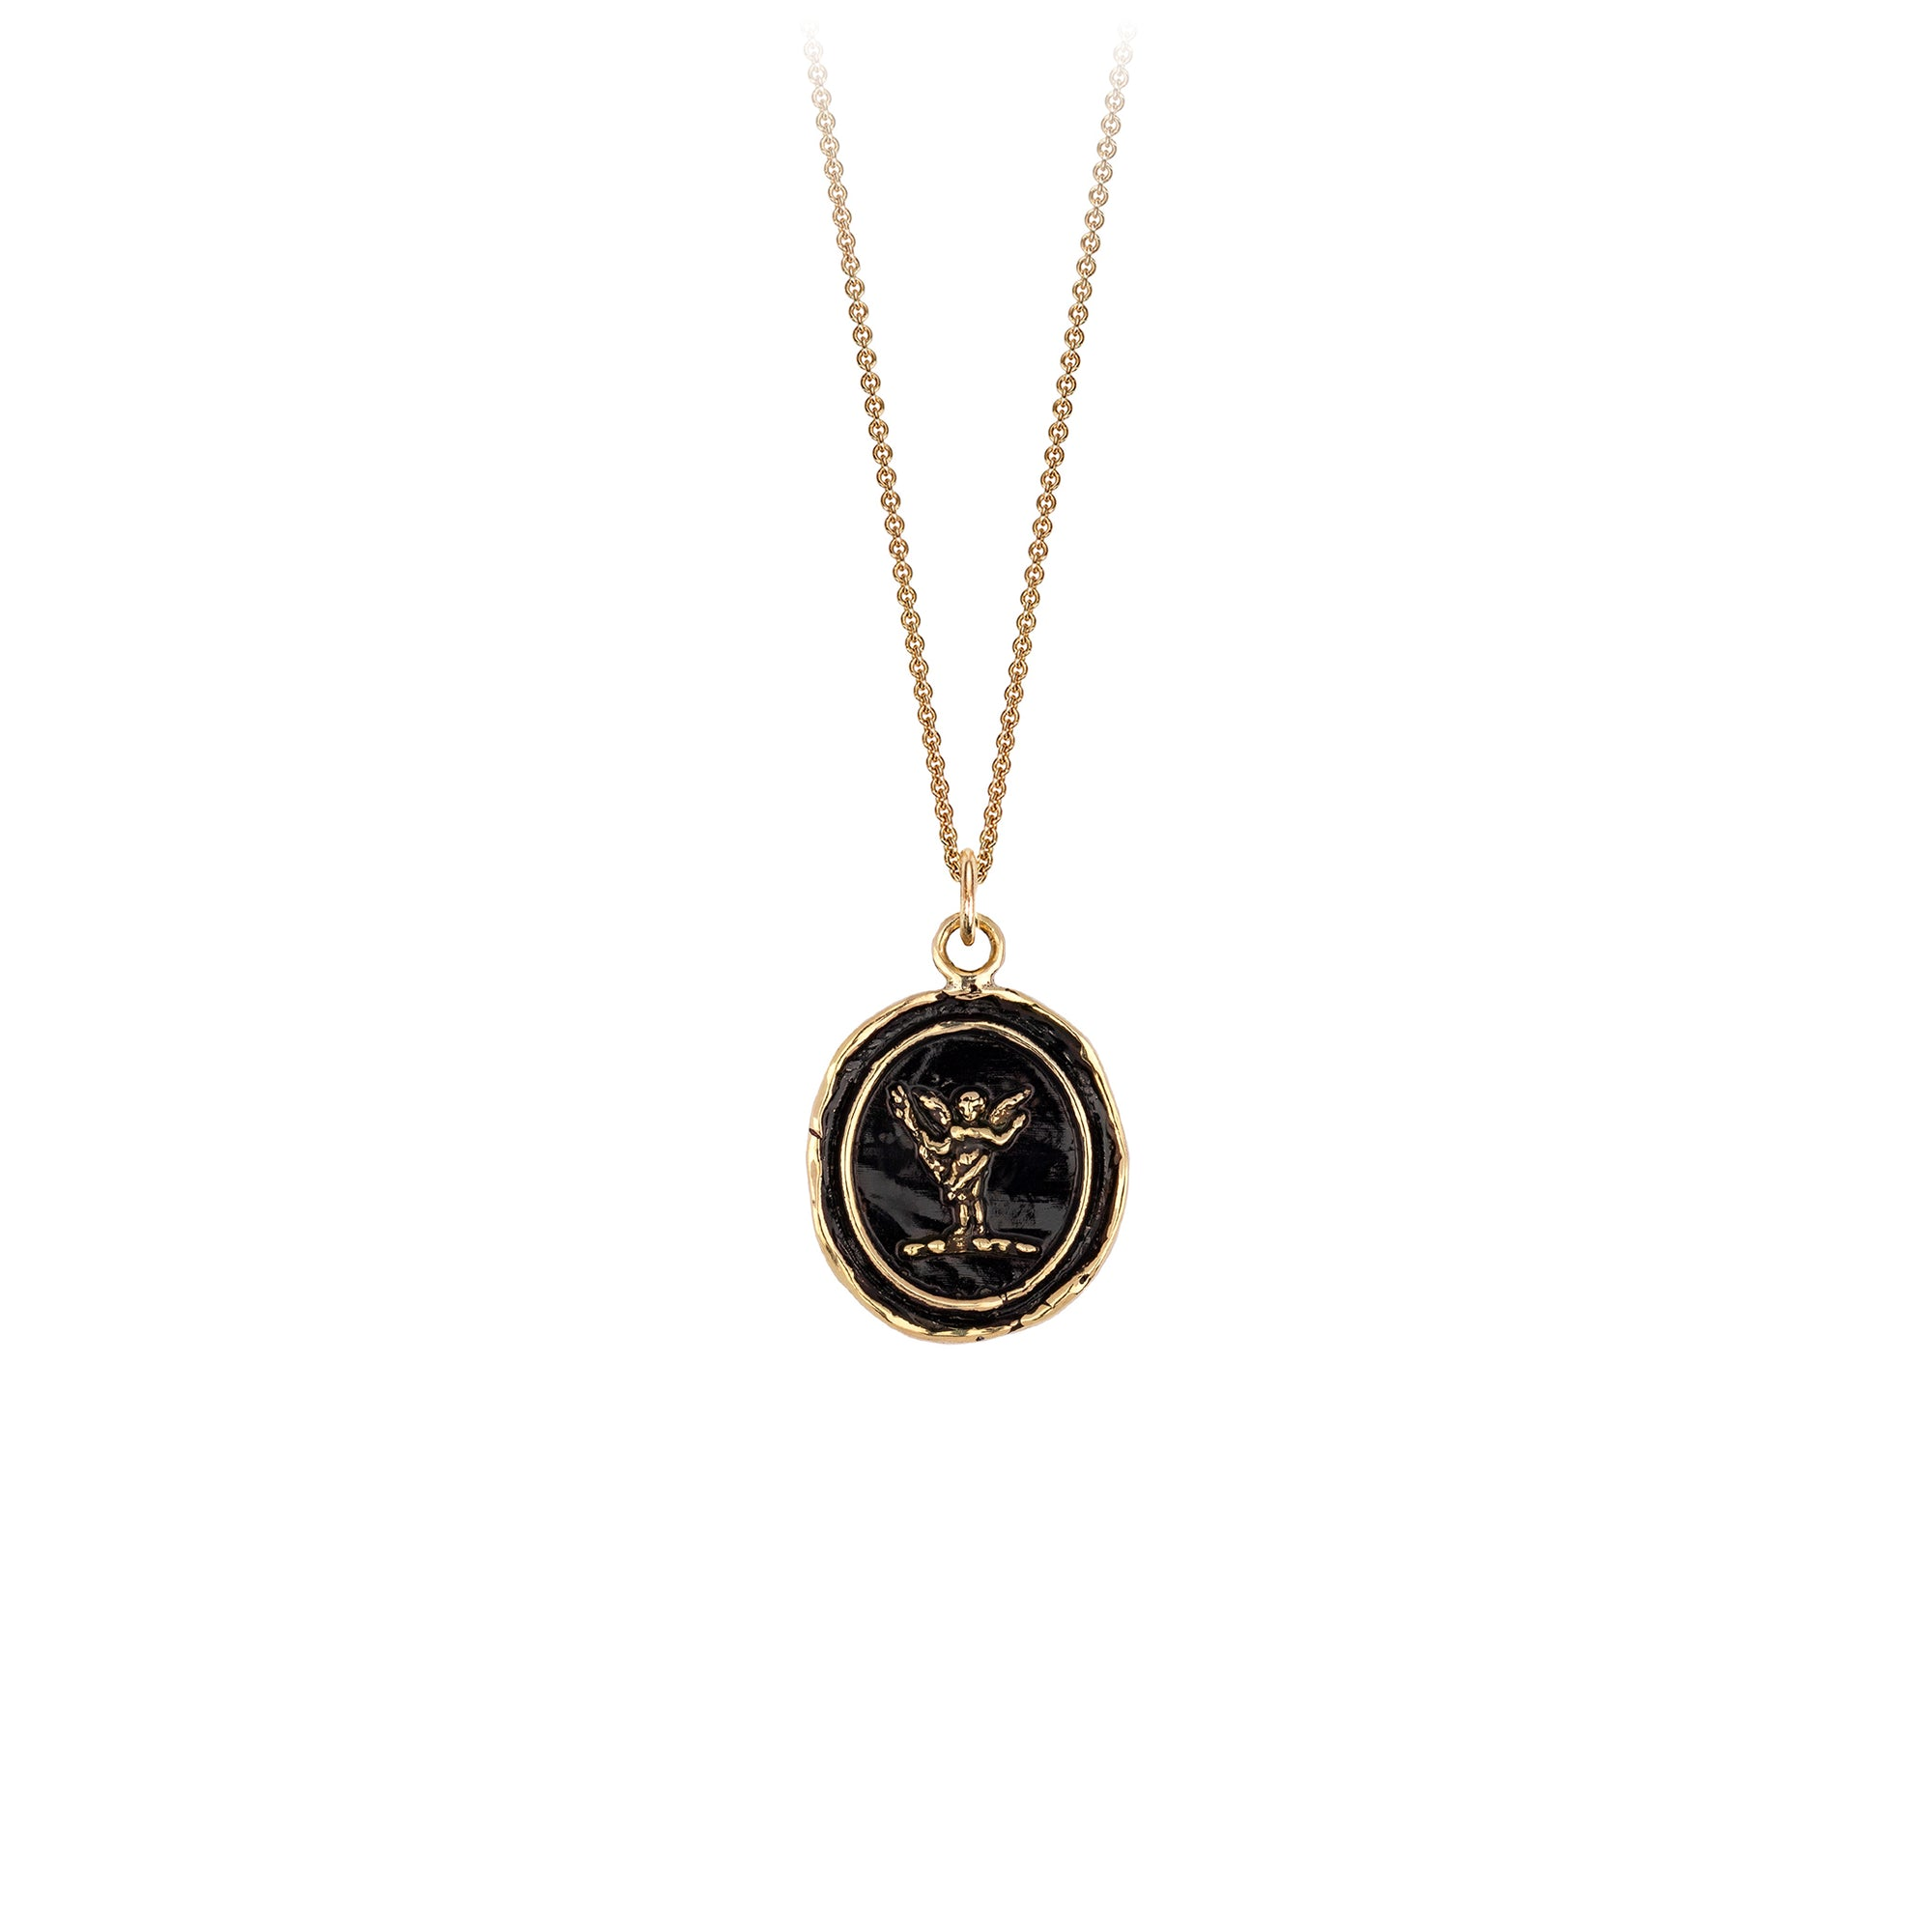 Pyrrha 14K Gold Power of Love Talisman Necklace